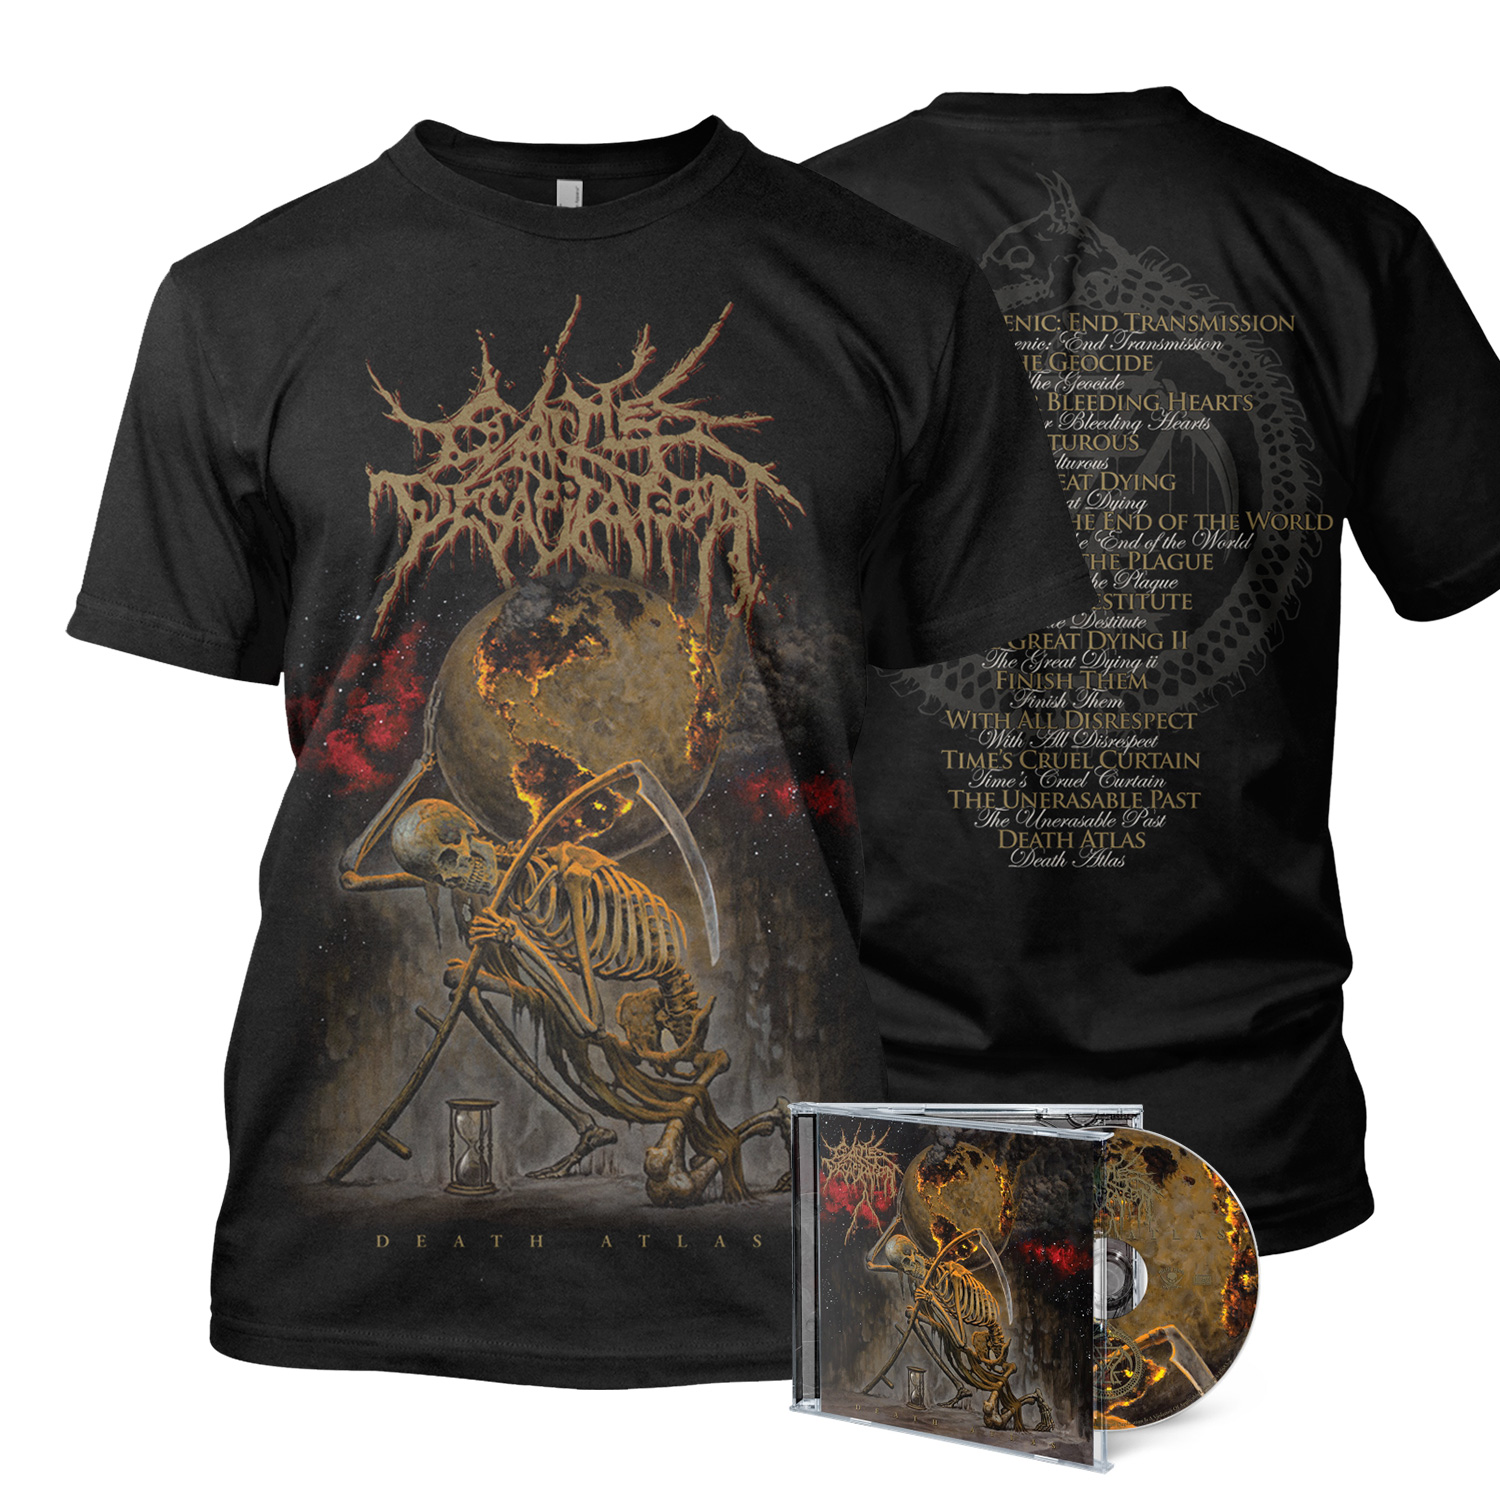 Death Atlas - CD/Tee Bundle